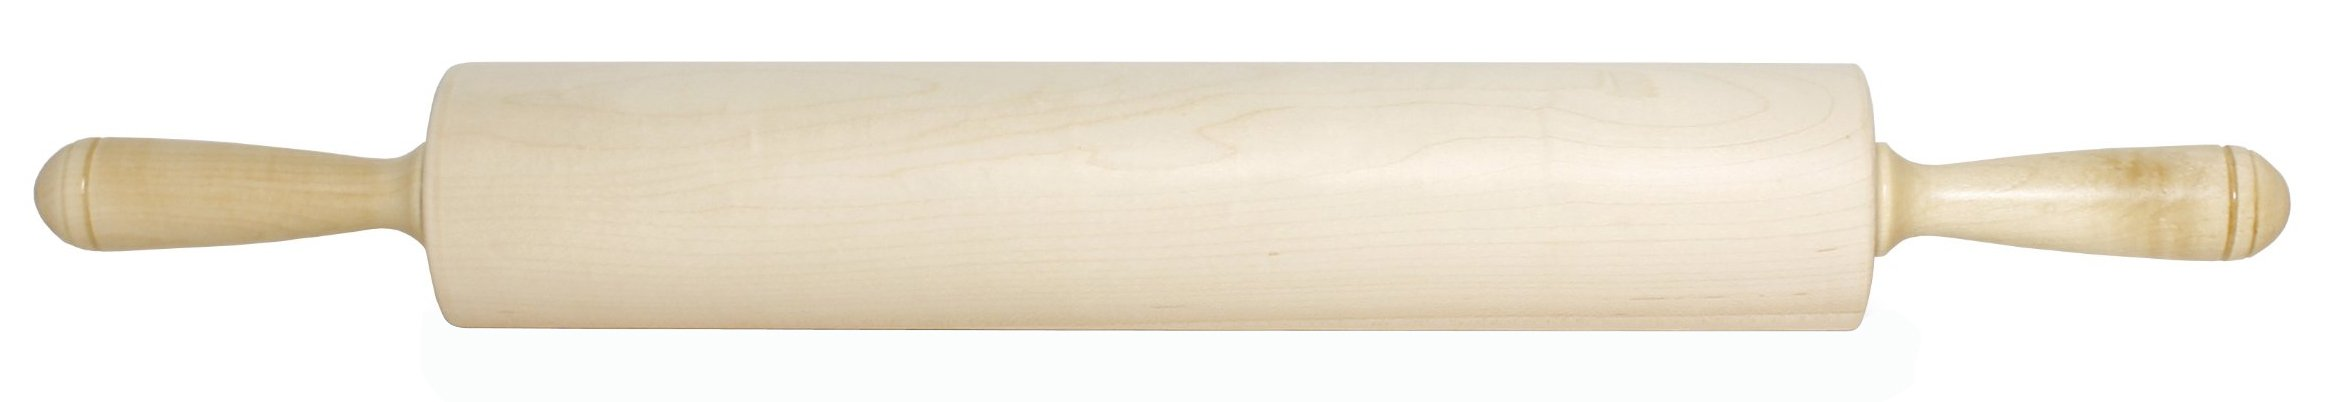 J.K. Adams Patisserie Maple Wood Rolling Pin, 15-inches by 2-3/4-inches